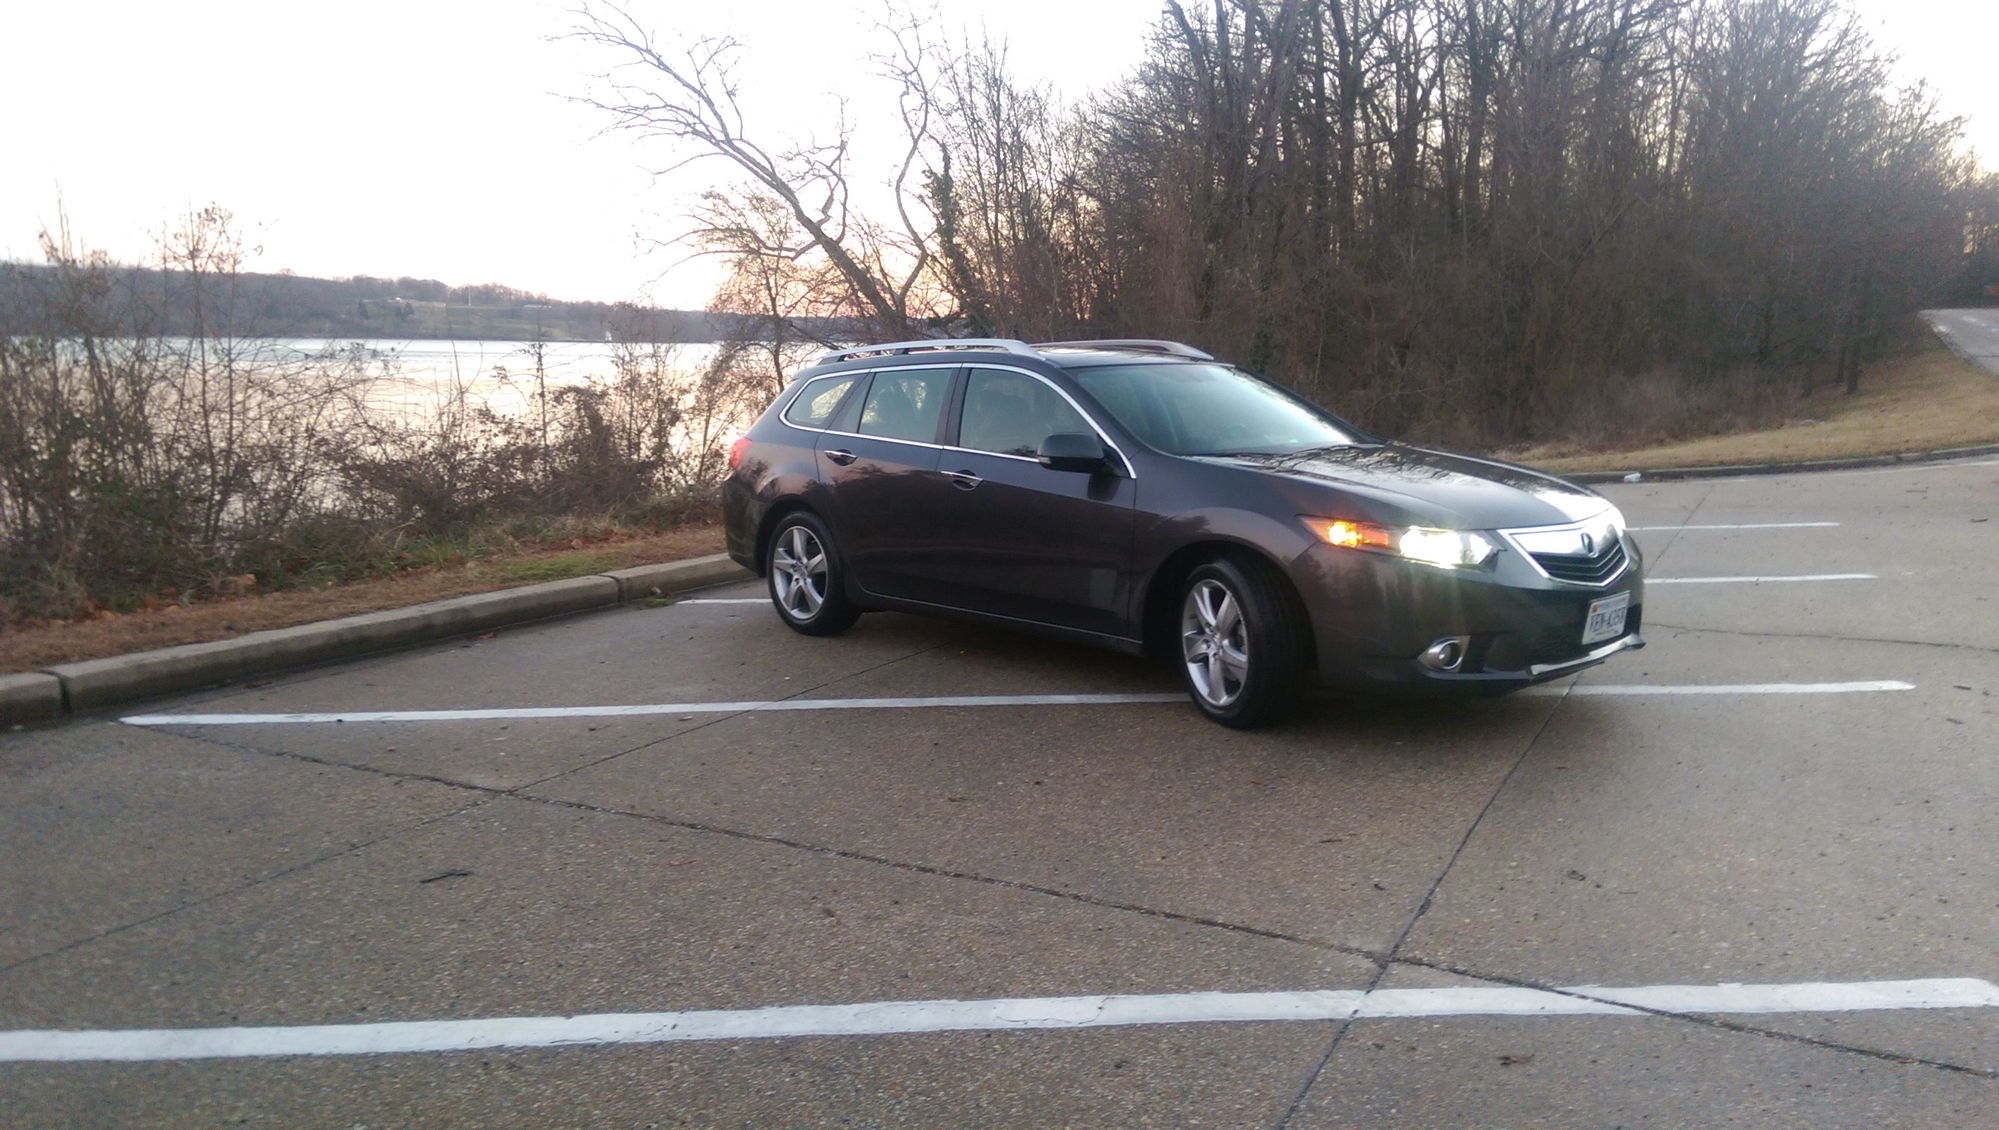 New Acura Tsx Wagon Owner 2015 Wagon And Hatchback